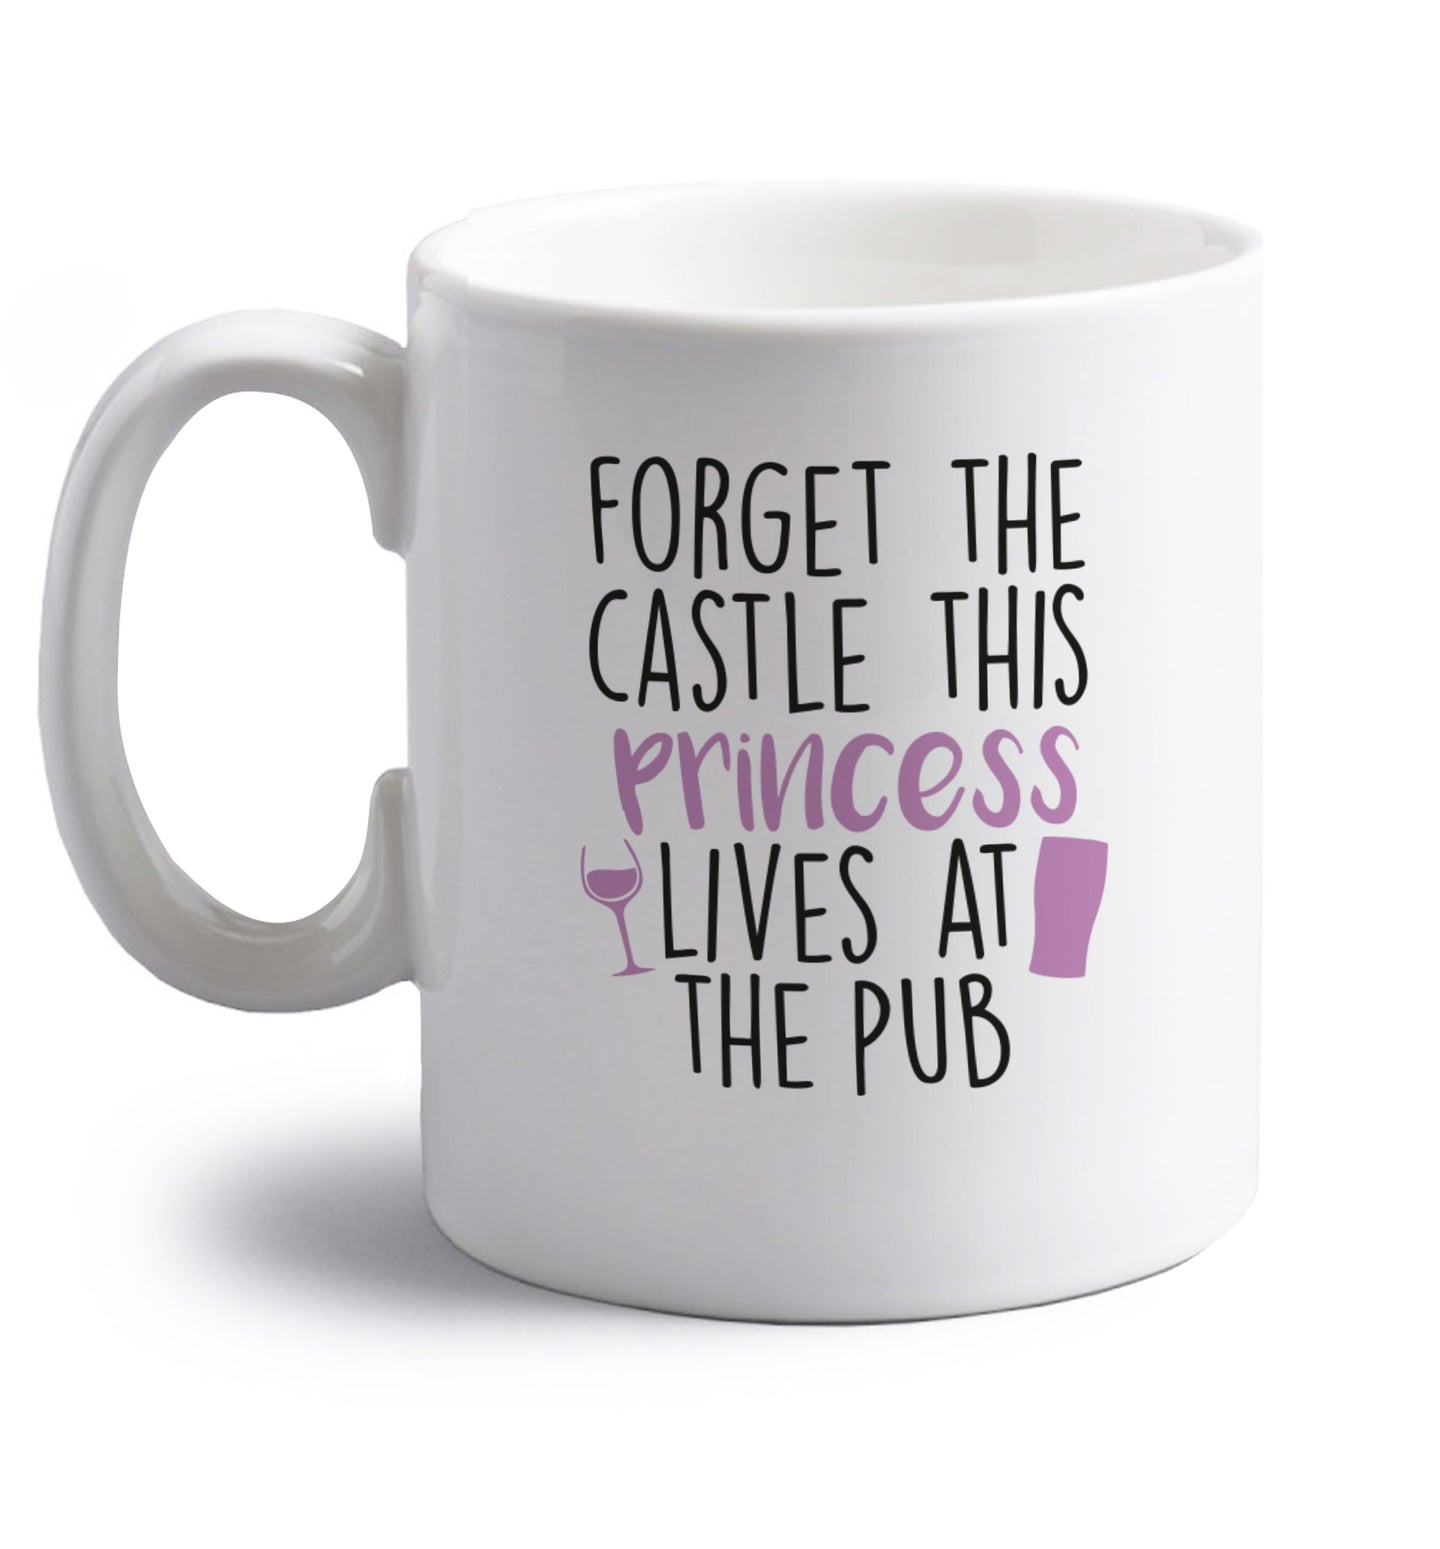 Forget the castle this princess lives at the pub right handed white ceramic mug